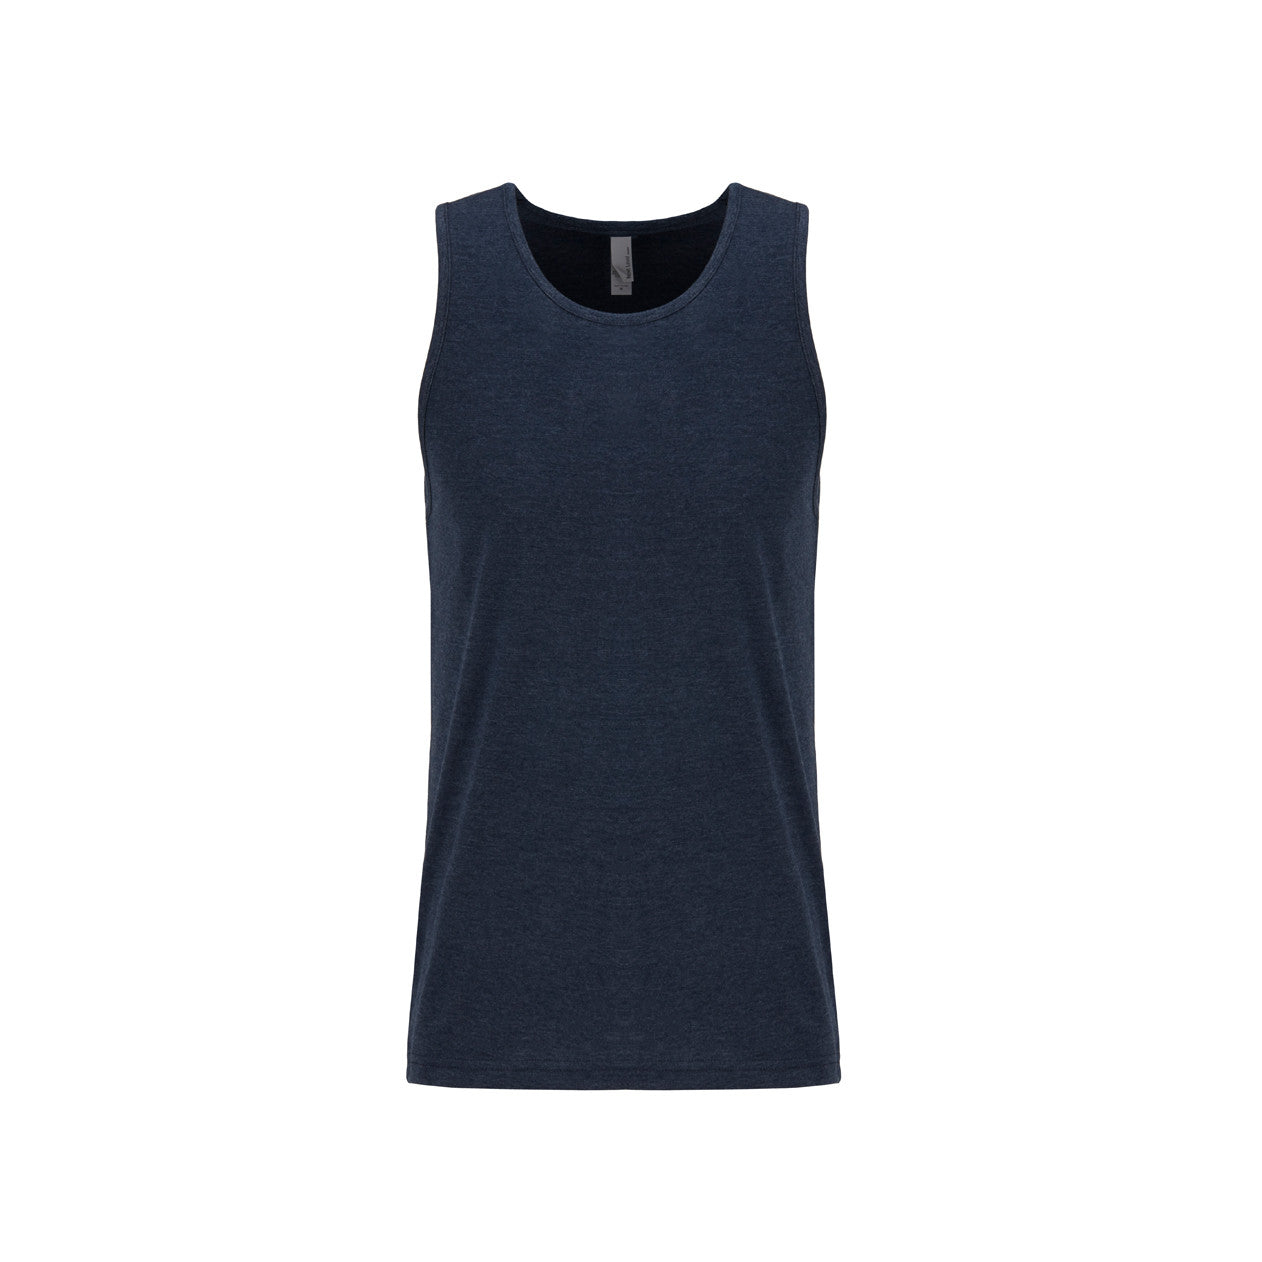 Men's Premium CVC Fitted Tank Top